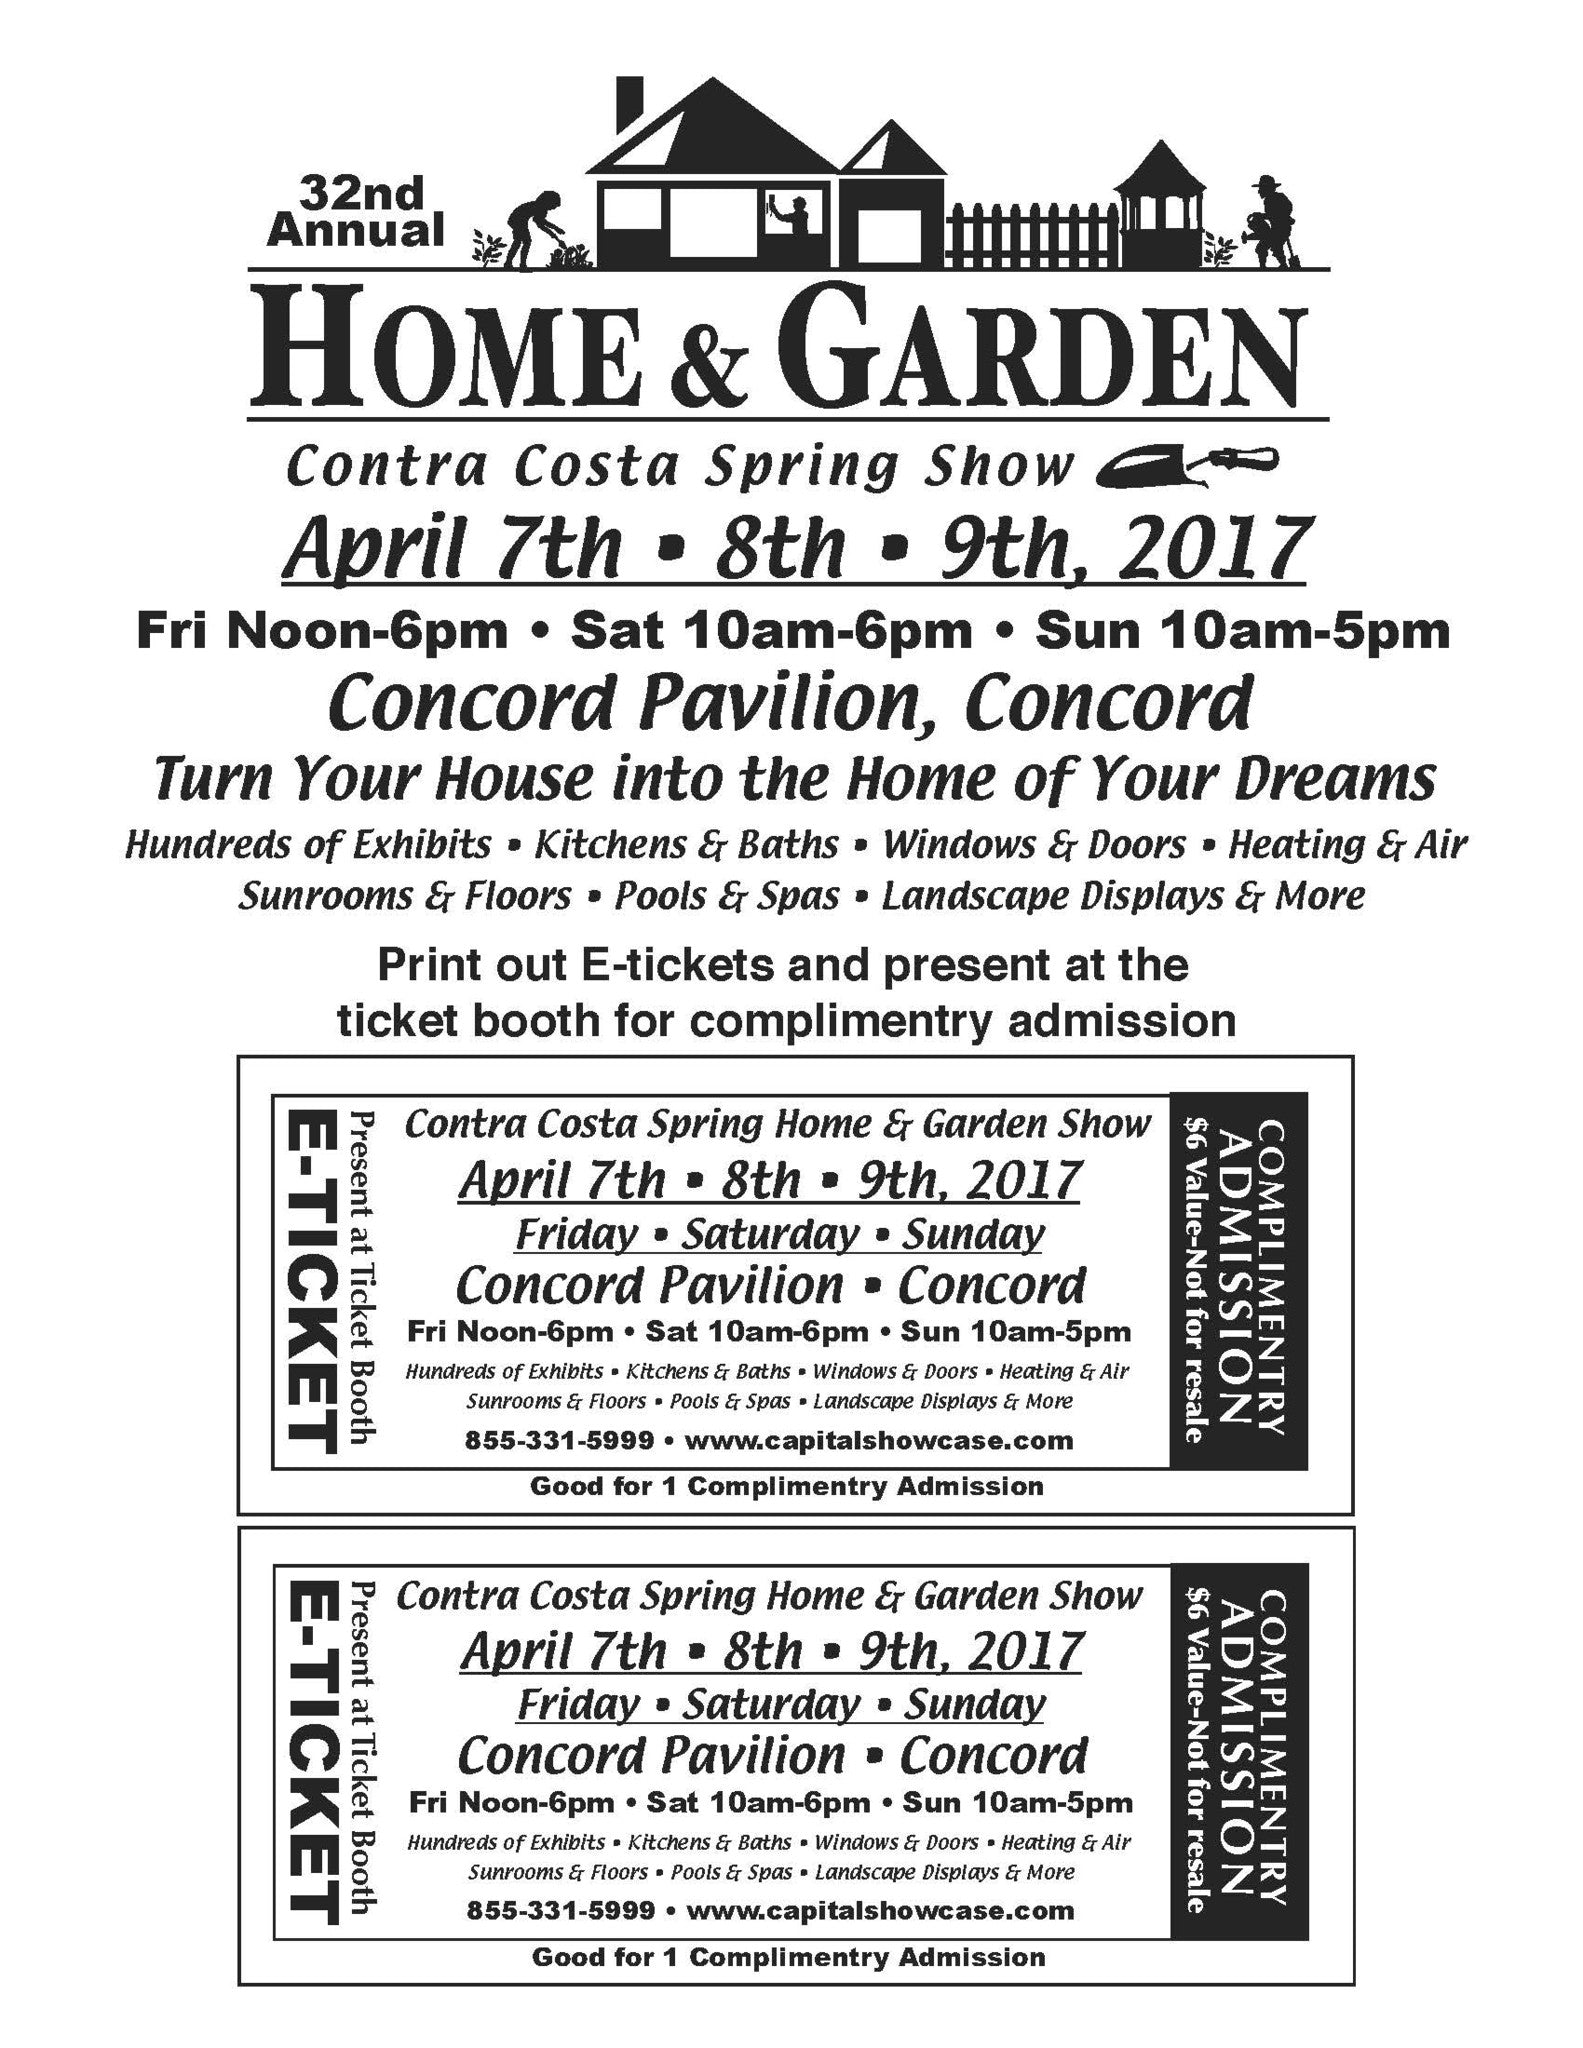 About Contra Costa's Premier Home & Garden Show